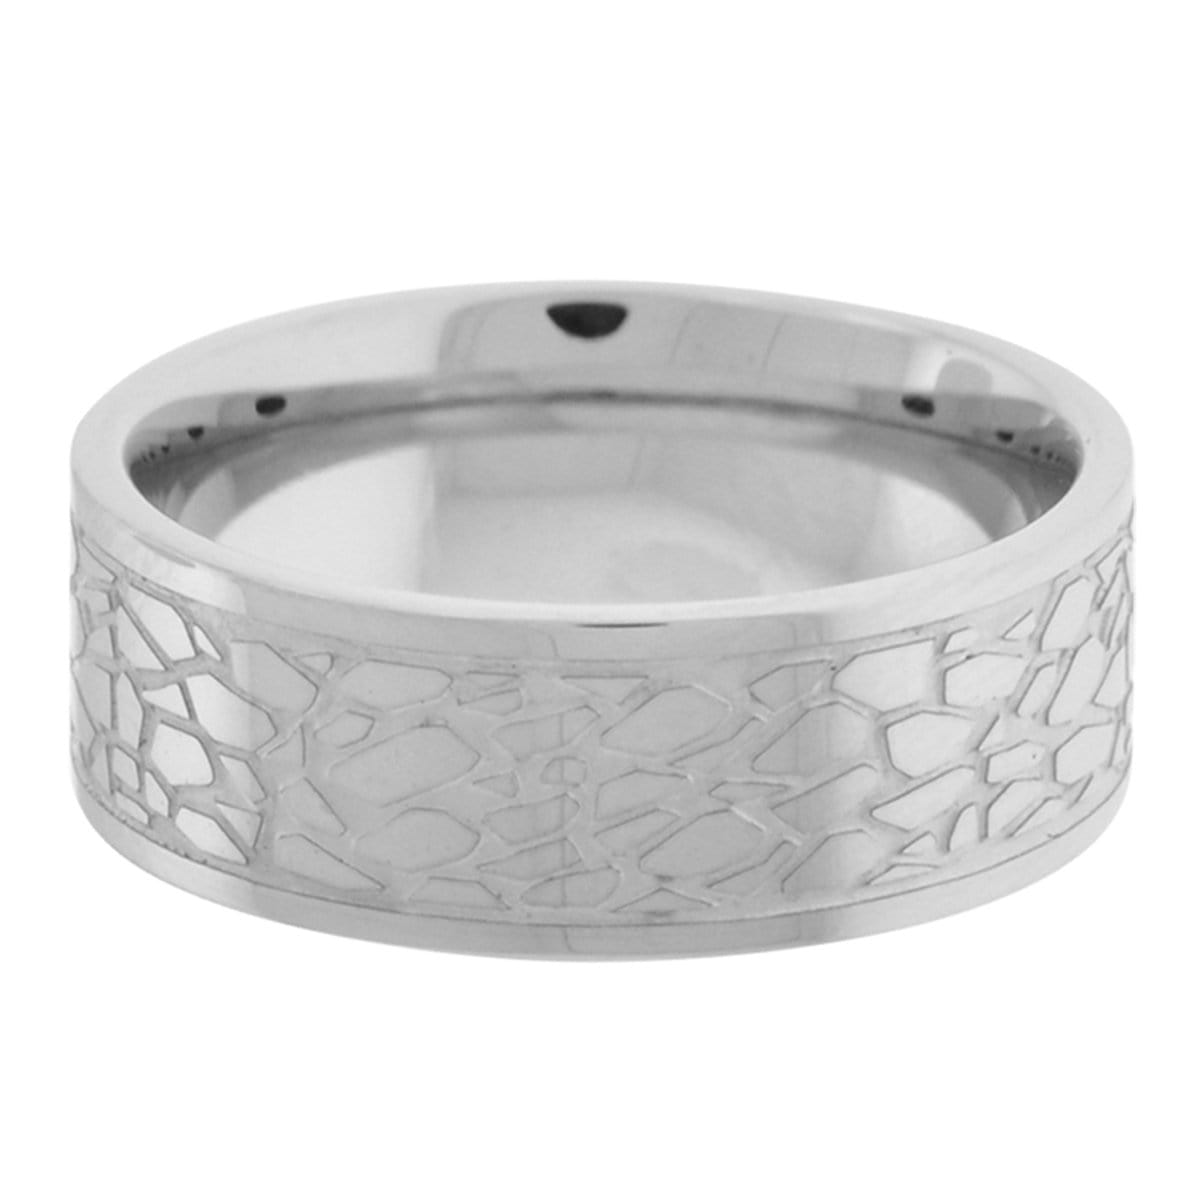 Silver Stainless Steel Raised Pebble Pattern Ring